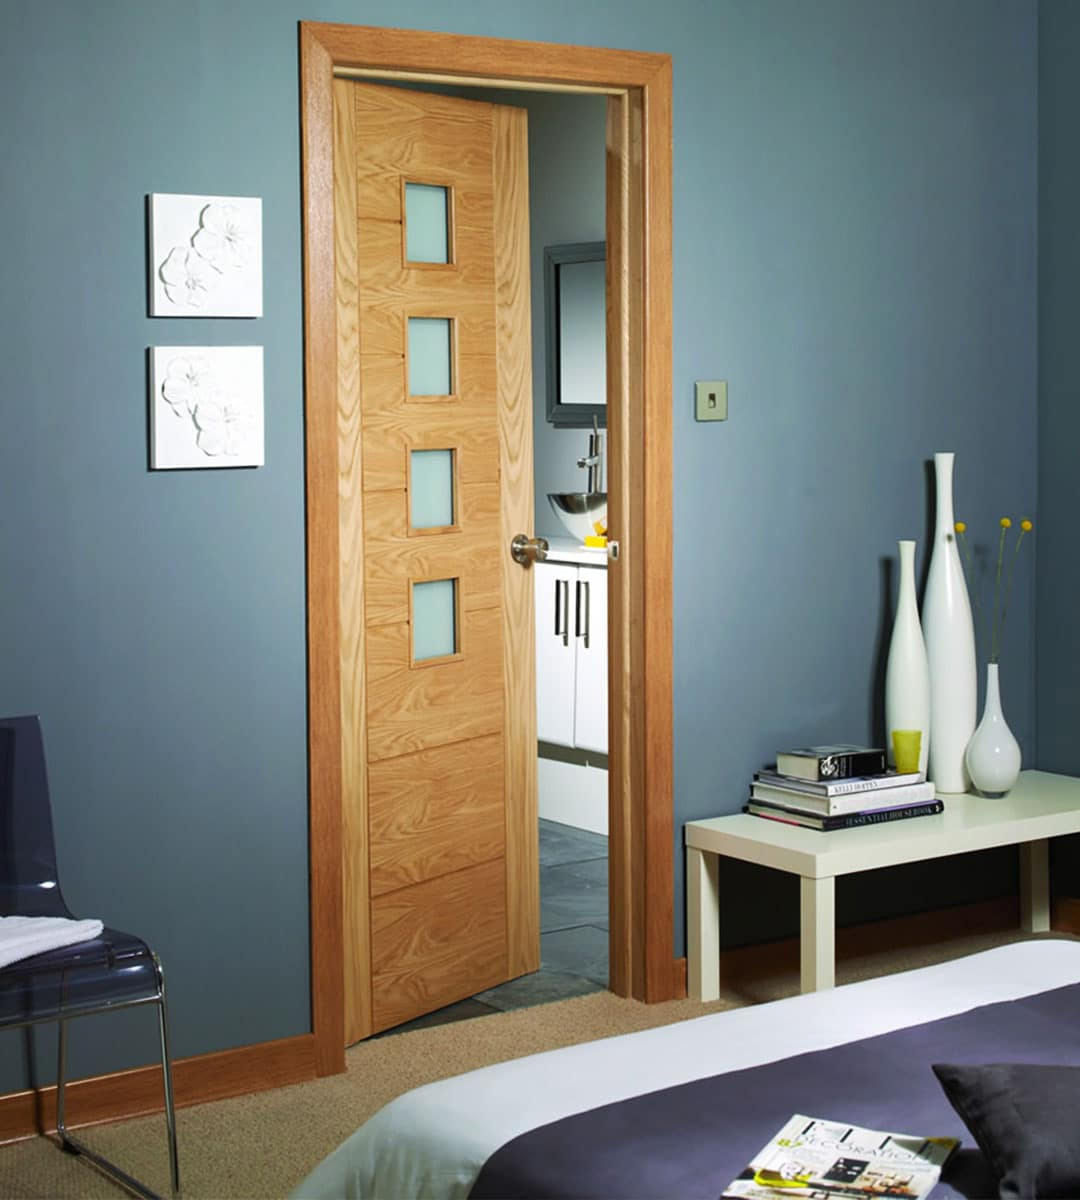 Bedroom Door: Palermo Oak Fire Door With Obscure Glass